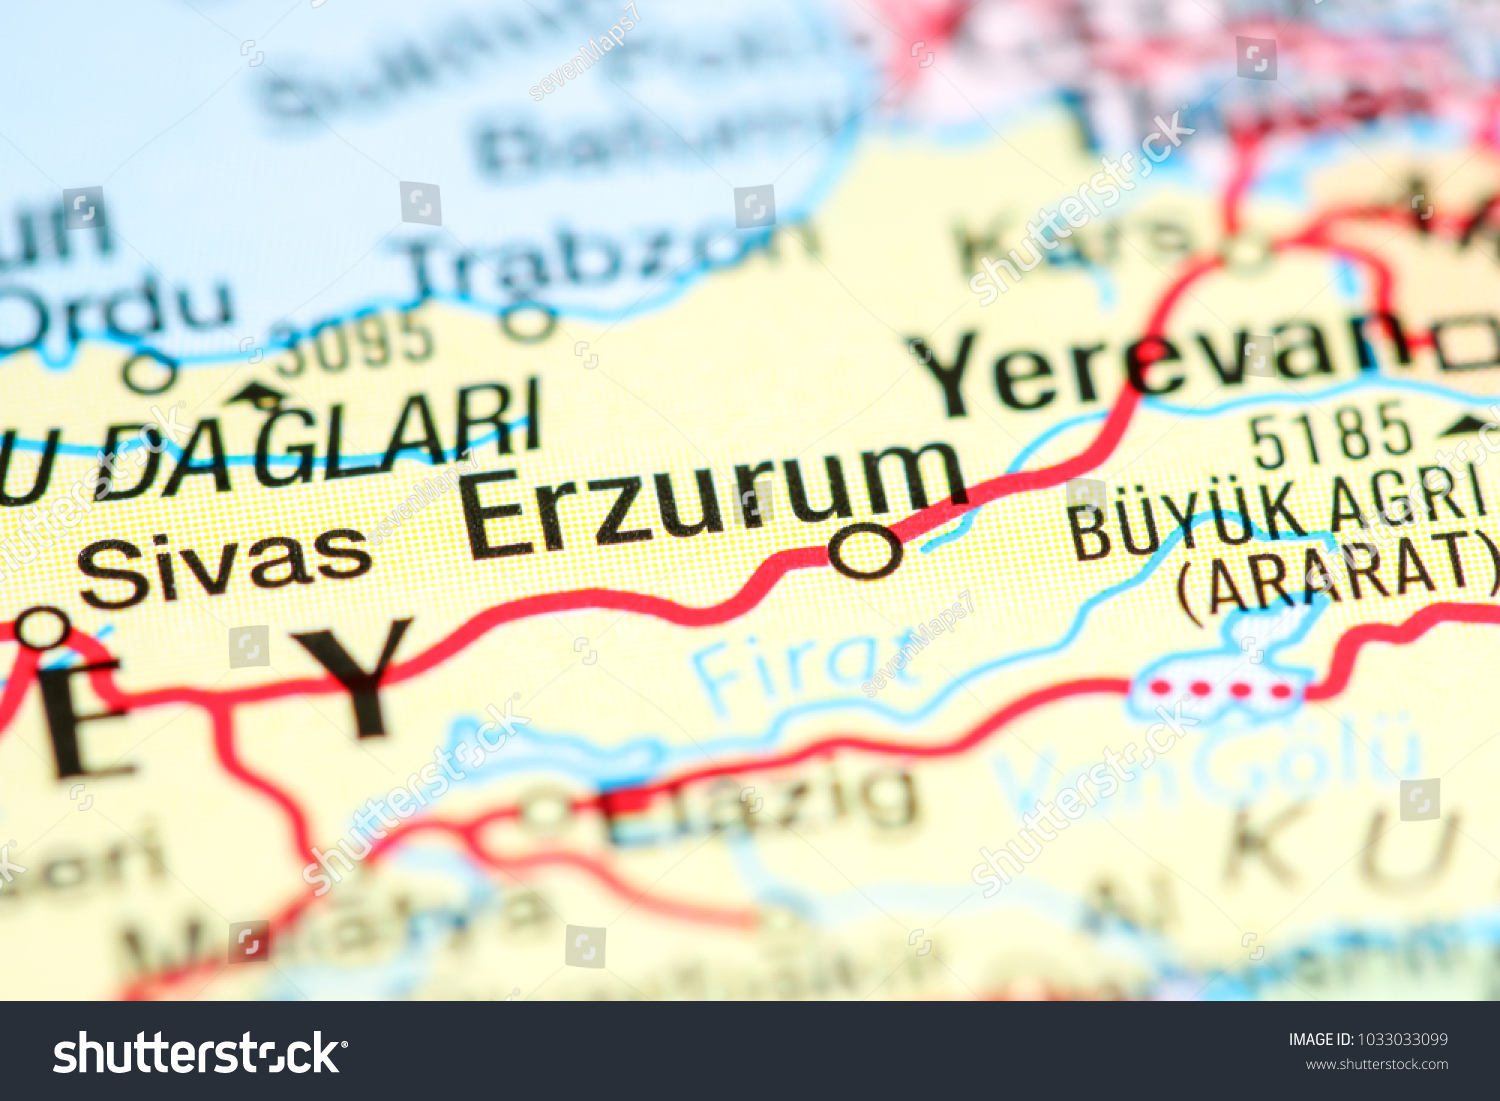 Erzurum Turkey On Map Stock Photo 1033033099 Shutterstock